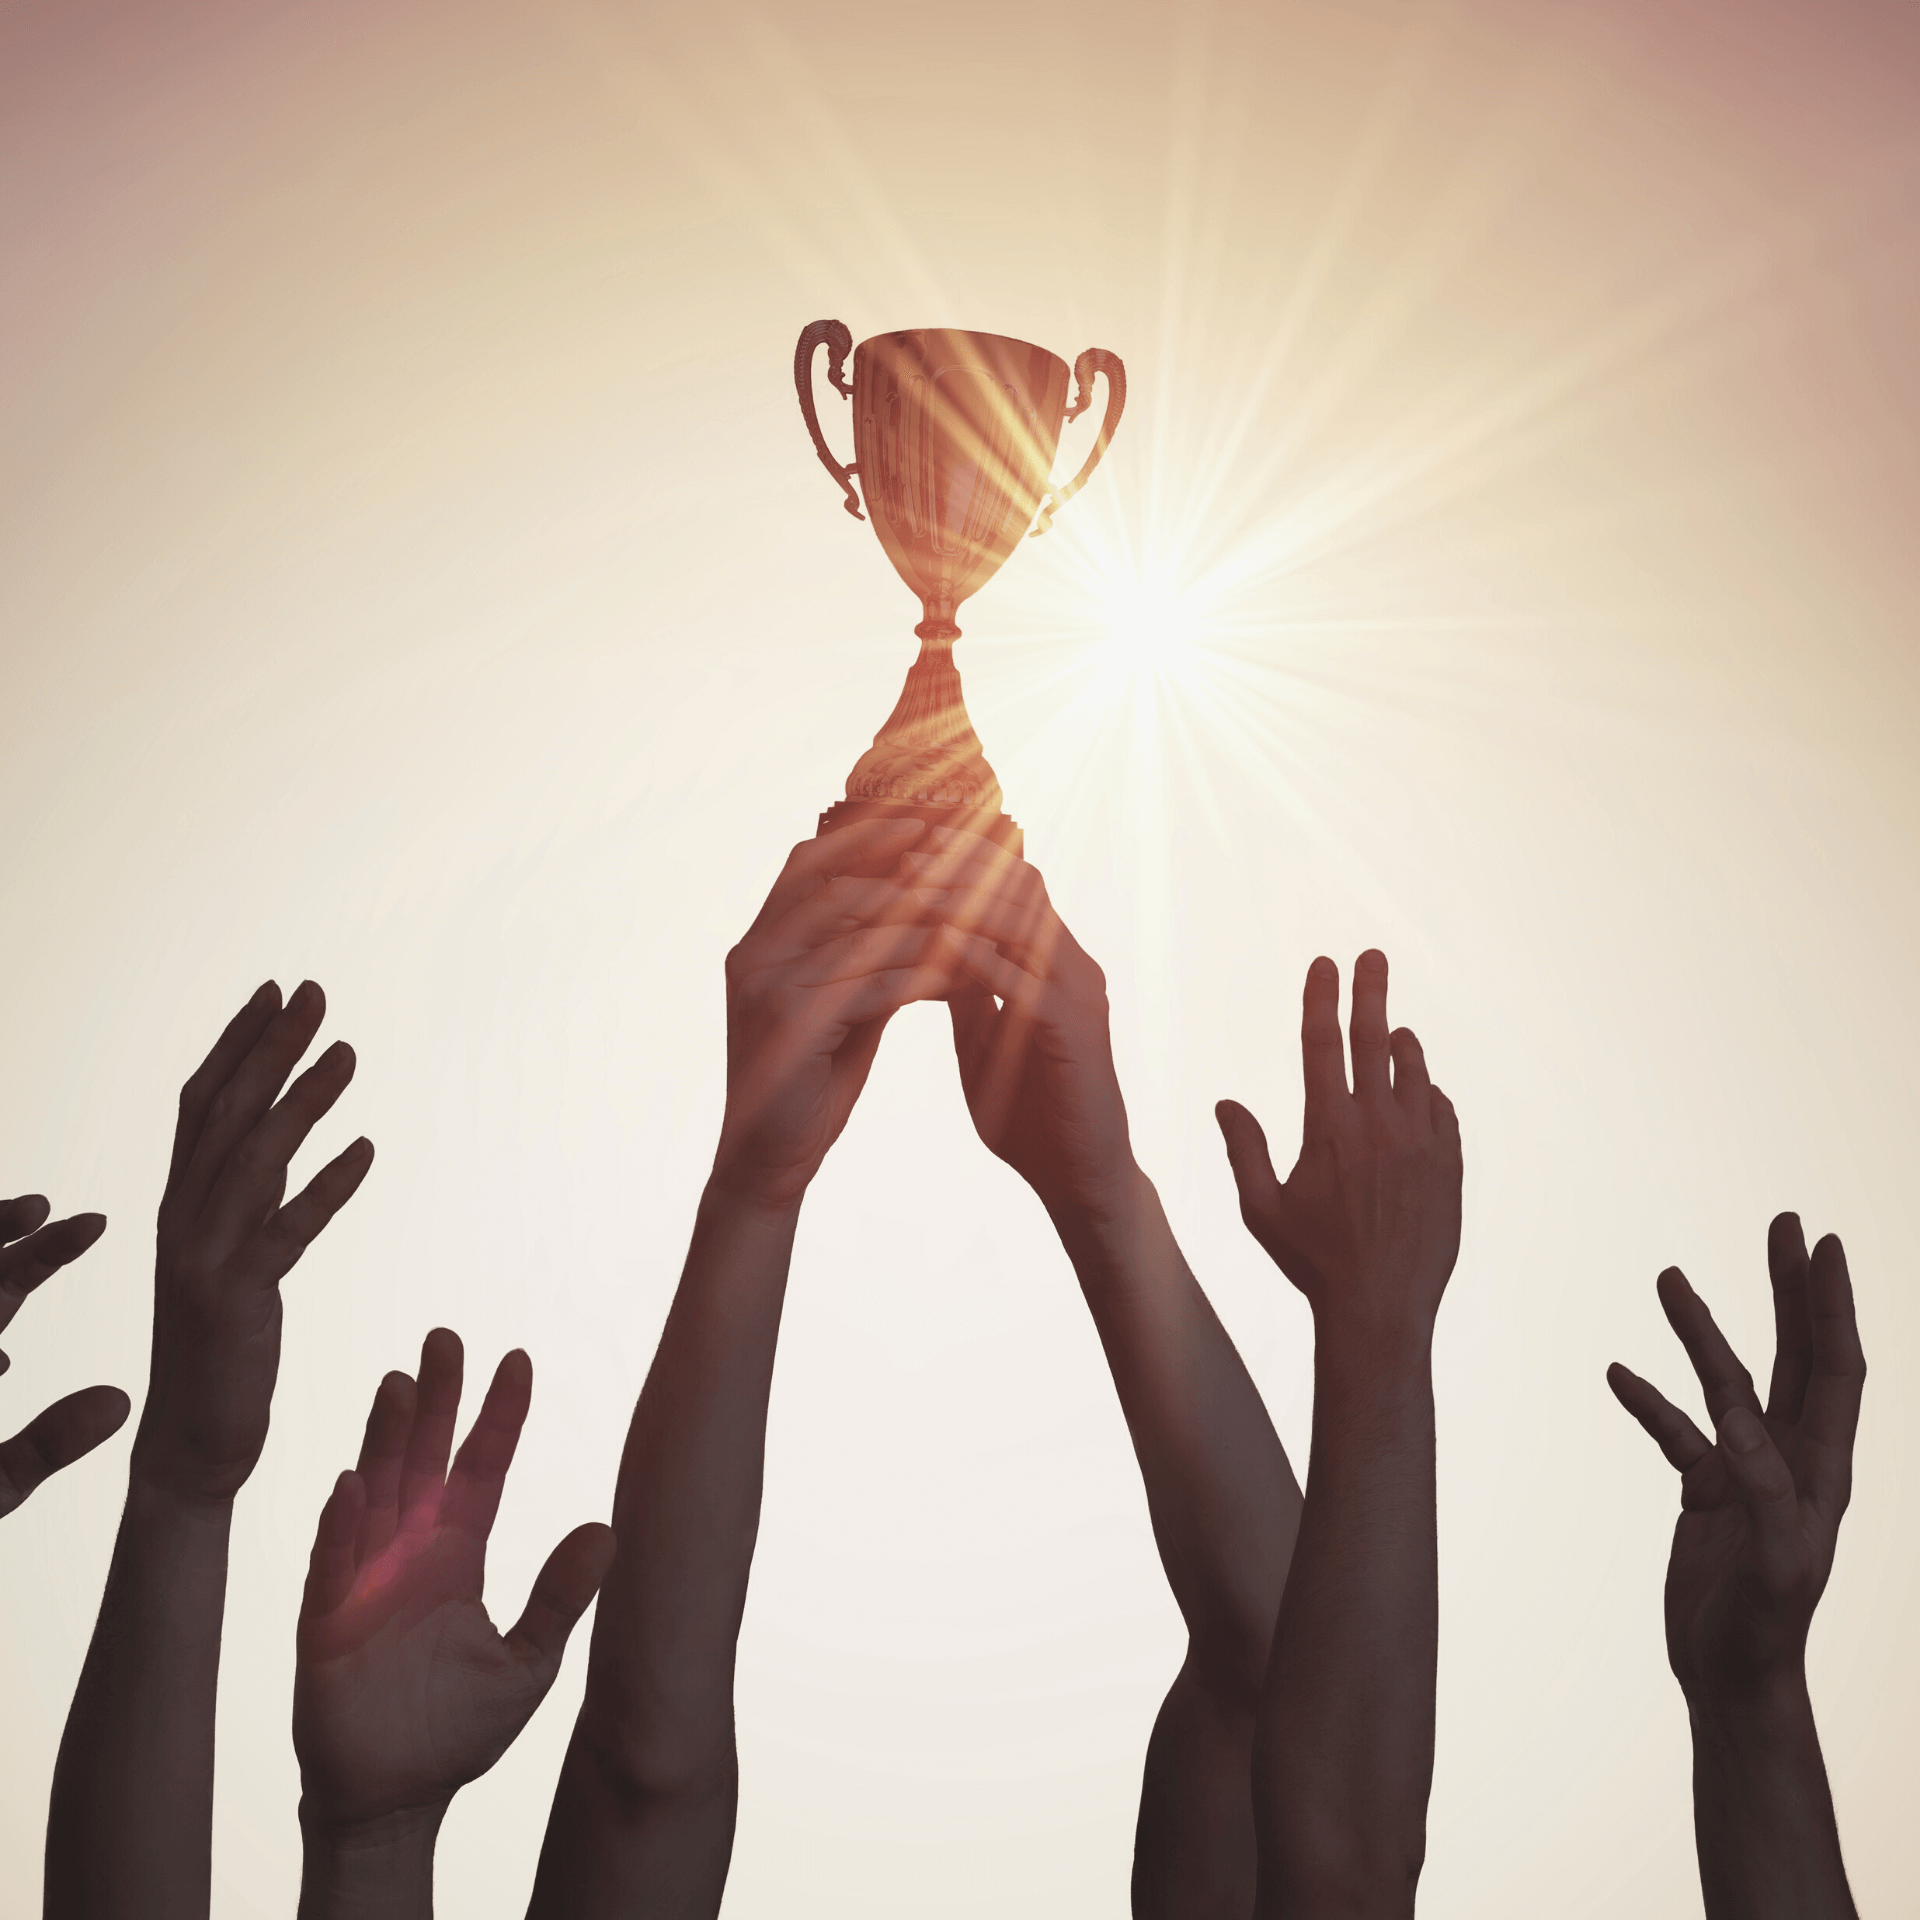 Customer Personalization wins every time. Hands holding up a trophy back lit by the sun.